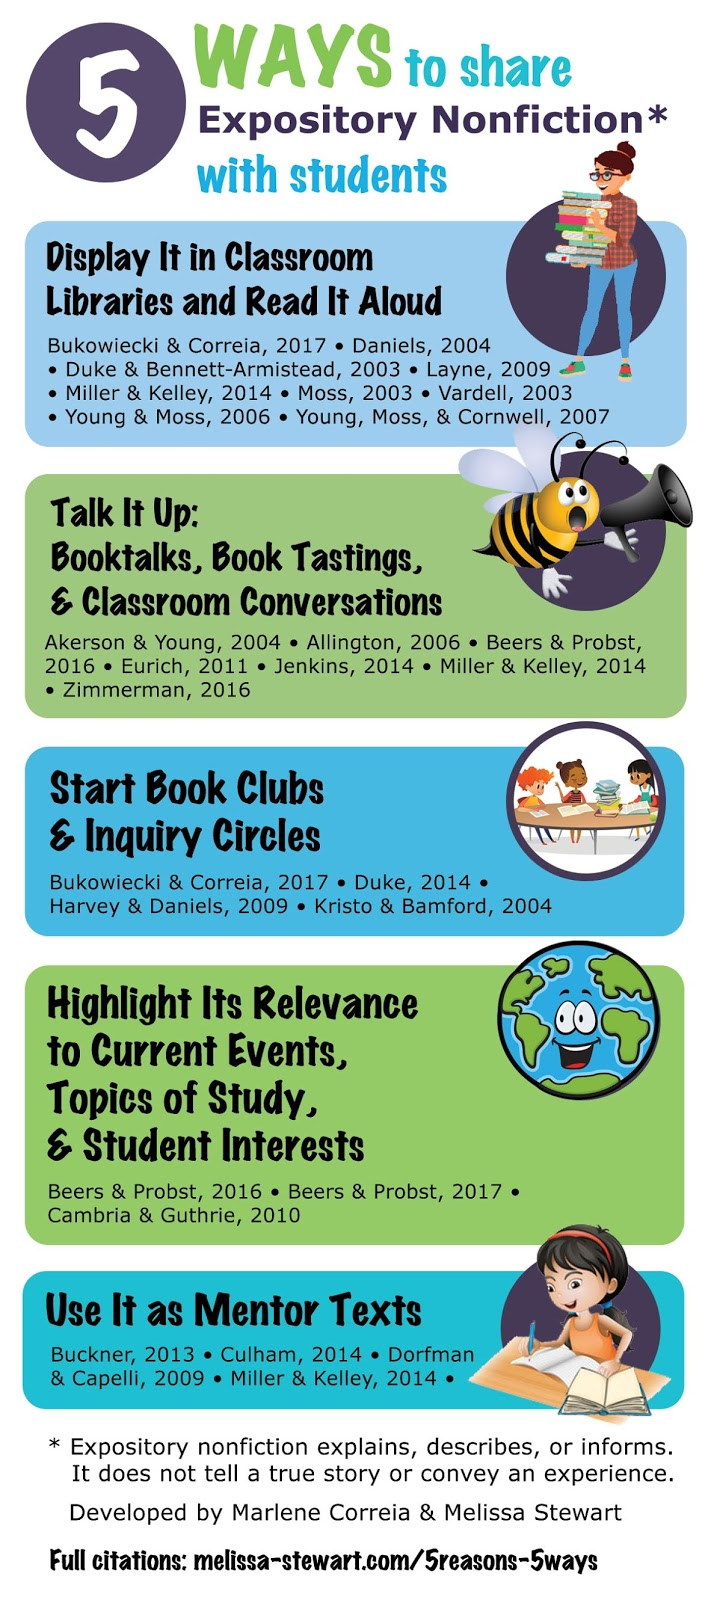 Expository Nonfiction: Highlight Its Relevance to Current Events, Topics of  Study, & Student Interests